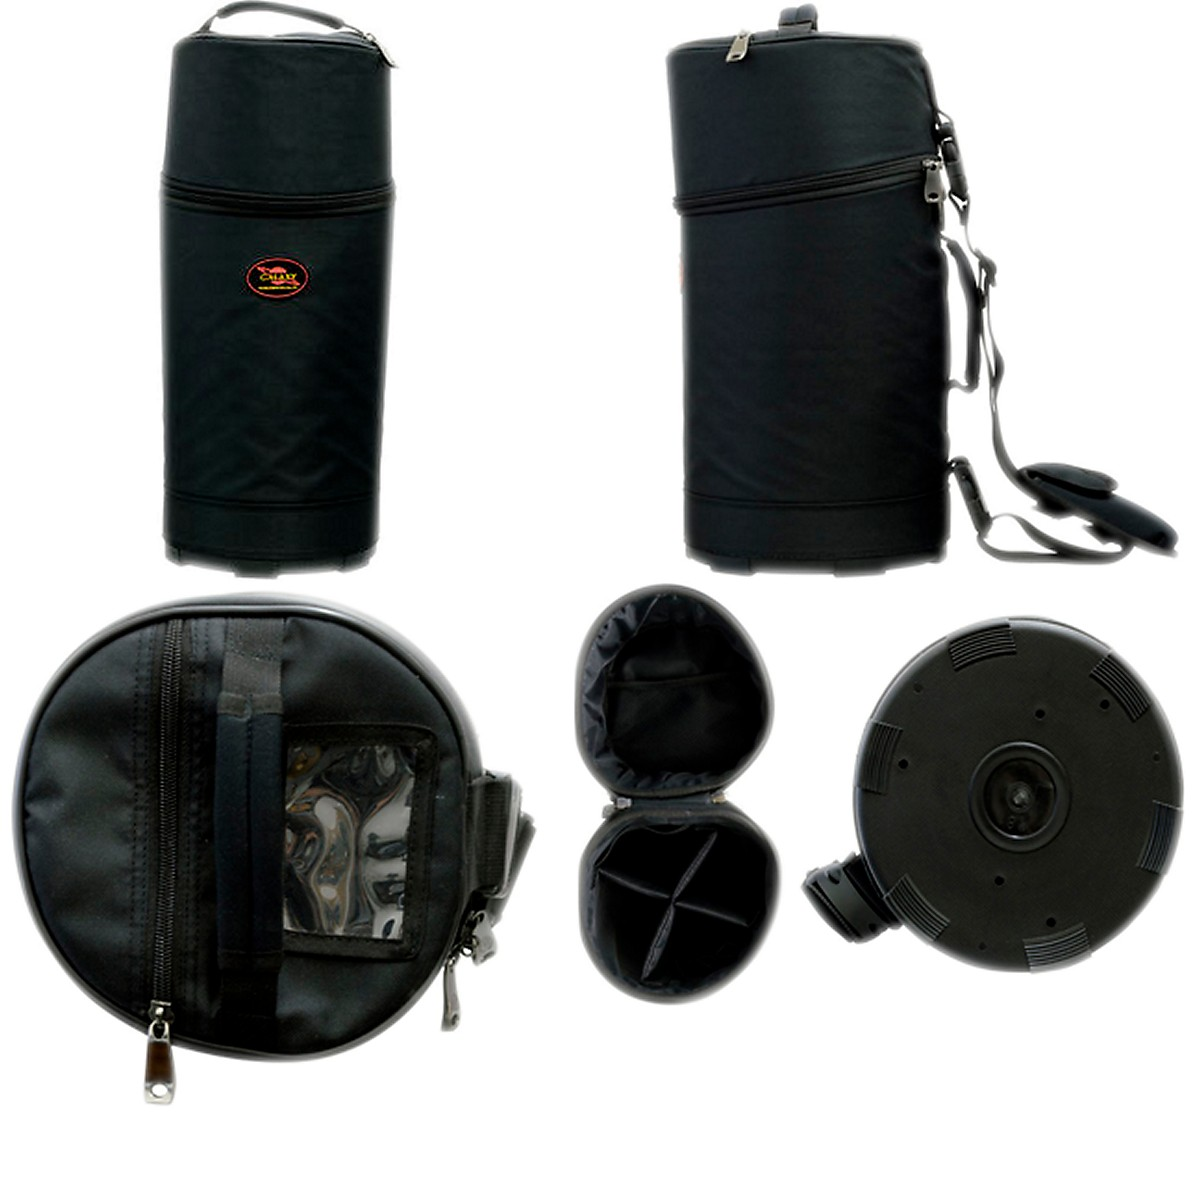 Humes & Berg Galaxy Grip Orchestral Mallet Bag